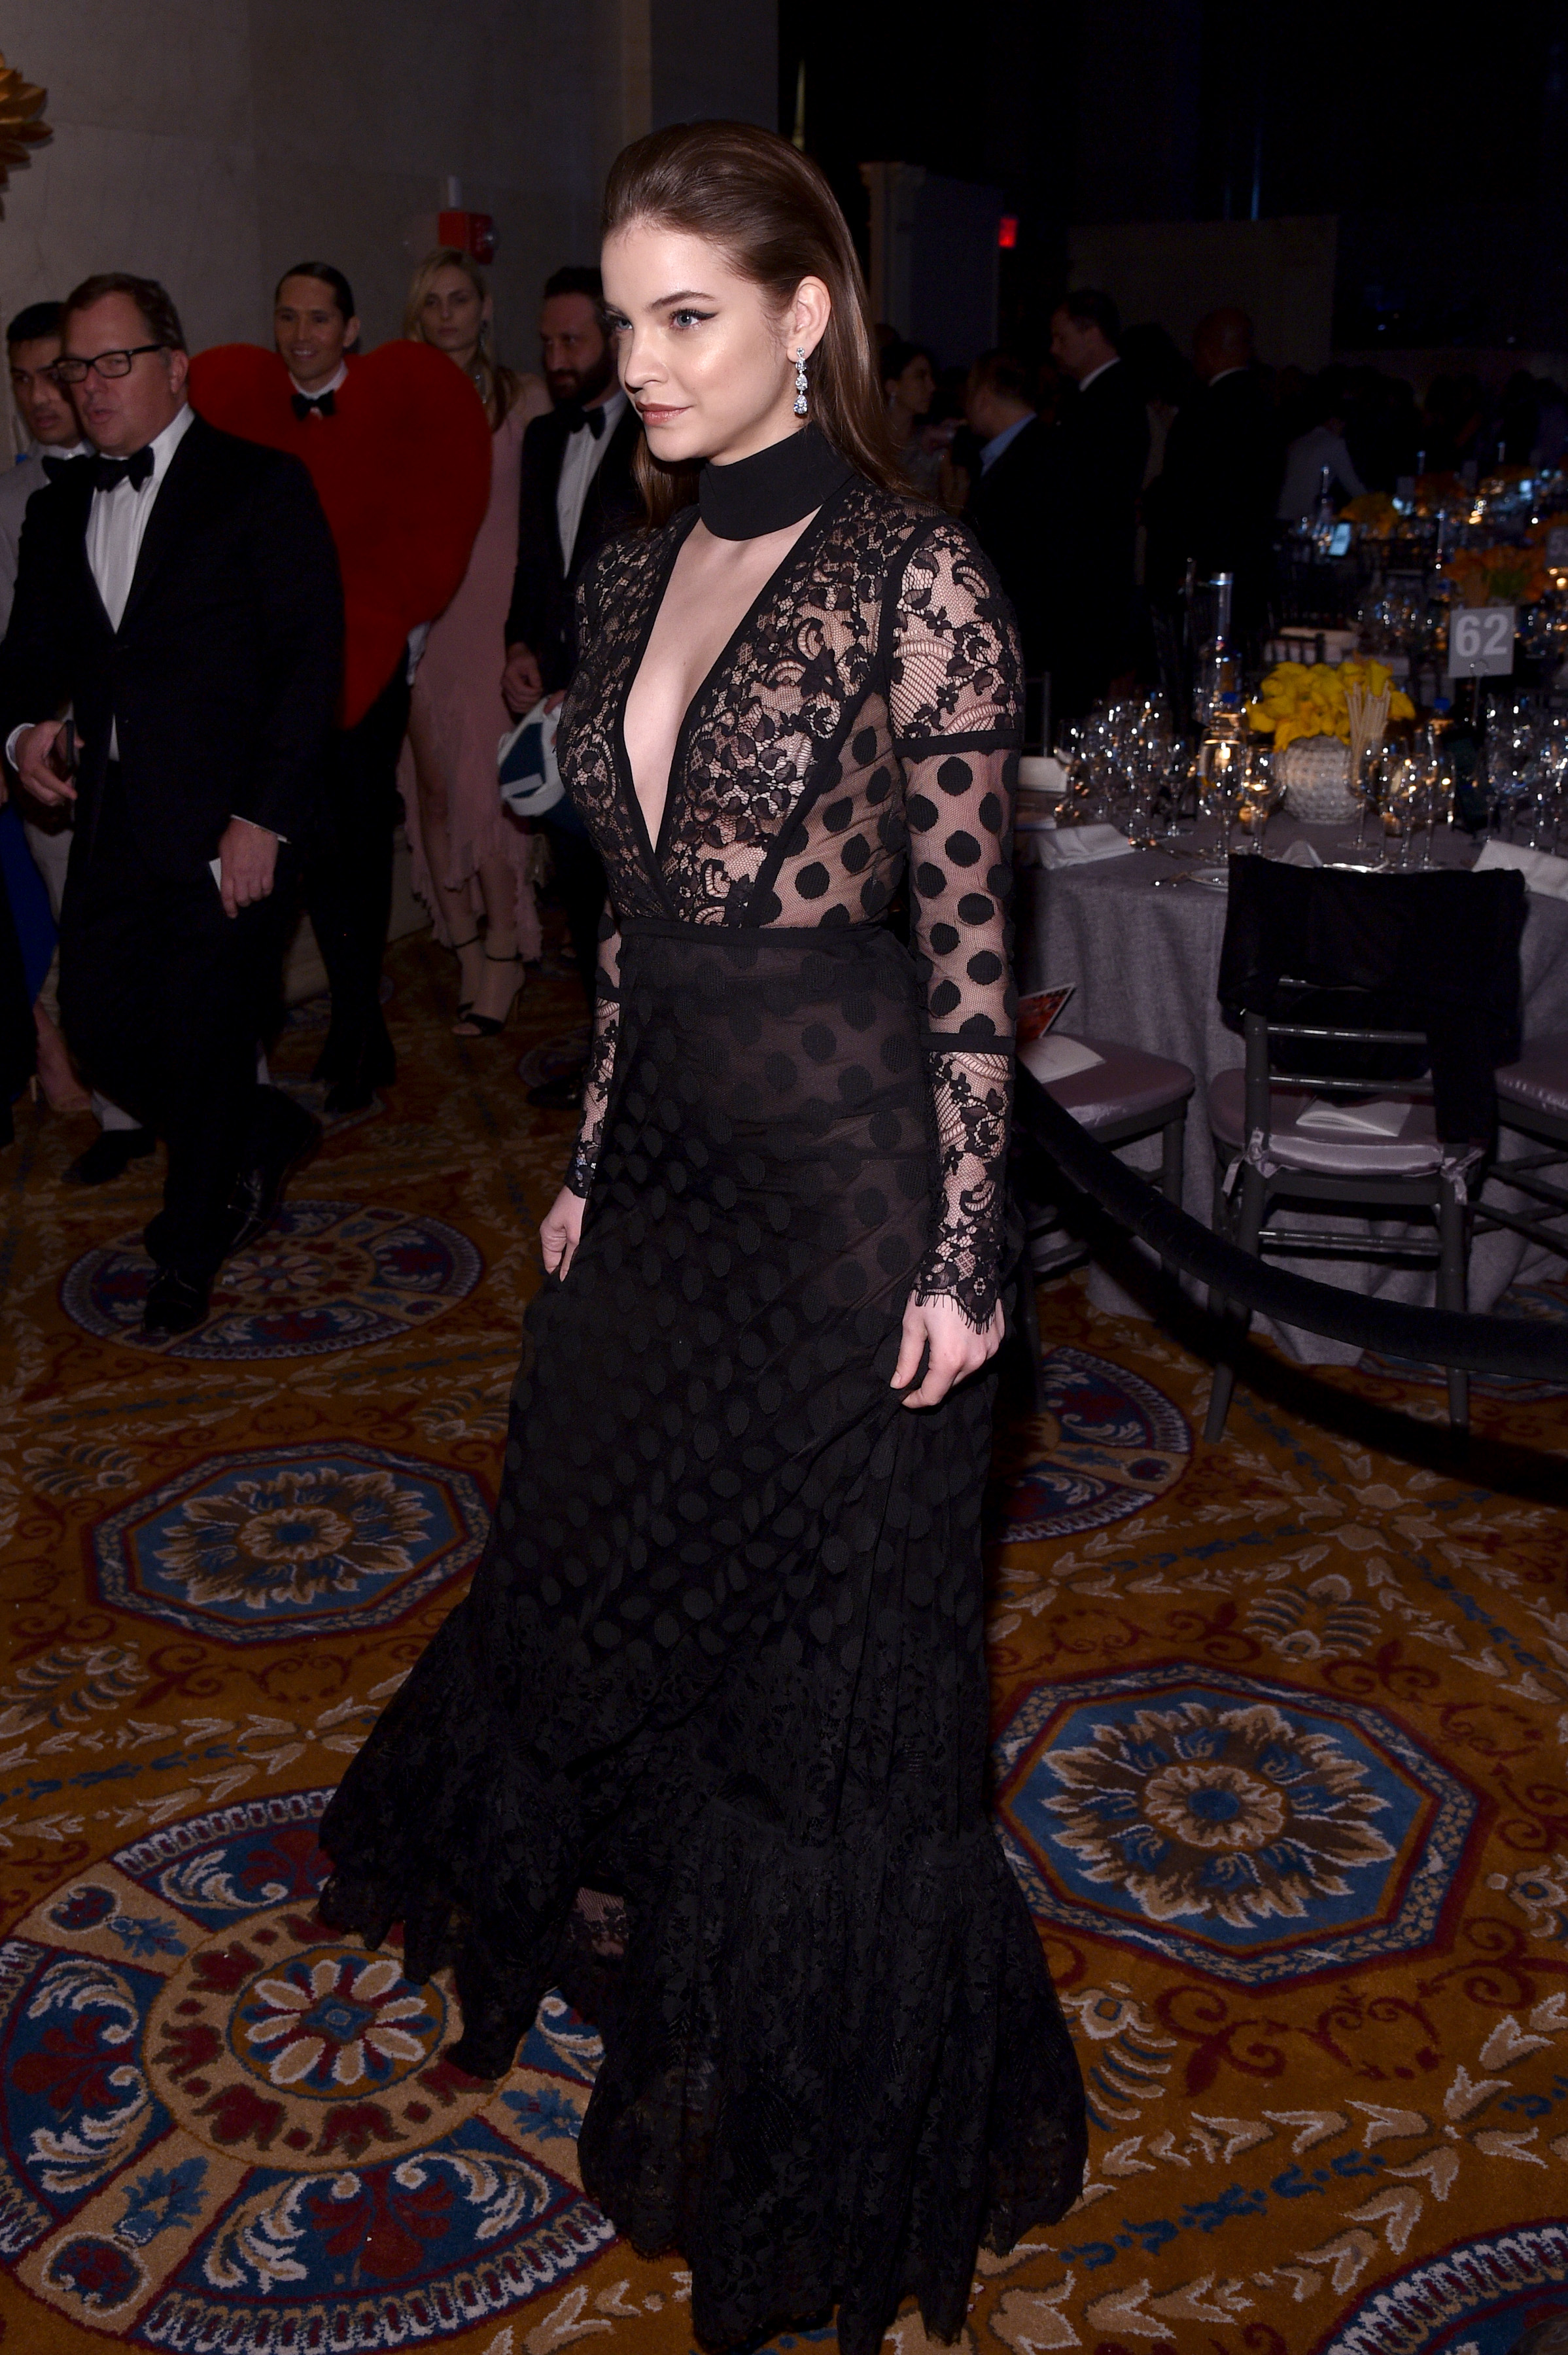 NEW YORK, NY - FEBRUARY 08:  Model Barbara Palvin attends as Moet & Chandon Toasts to the amfAR New York Gala At Cipriani Wall Street at Cipriani Wall Street on February 8, 2017 in New York City.  (Photo by Bryan Bedder/Getty Images for Moet & Chandon)